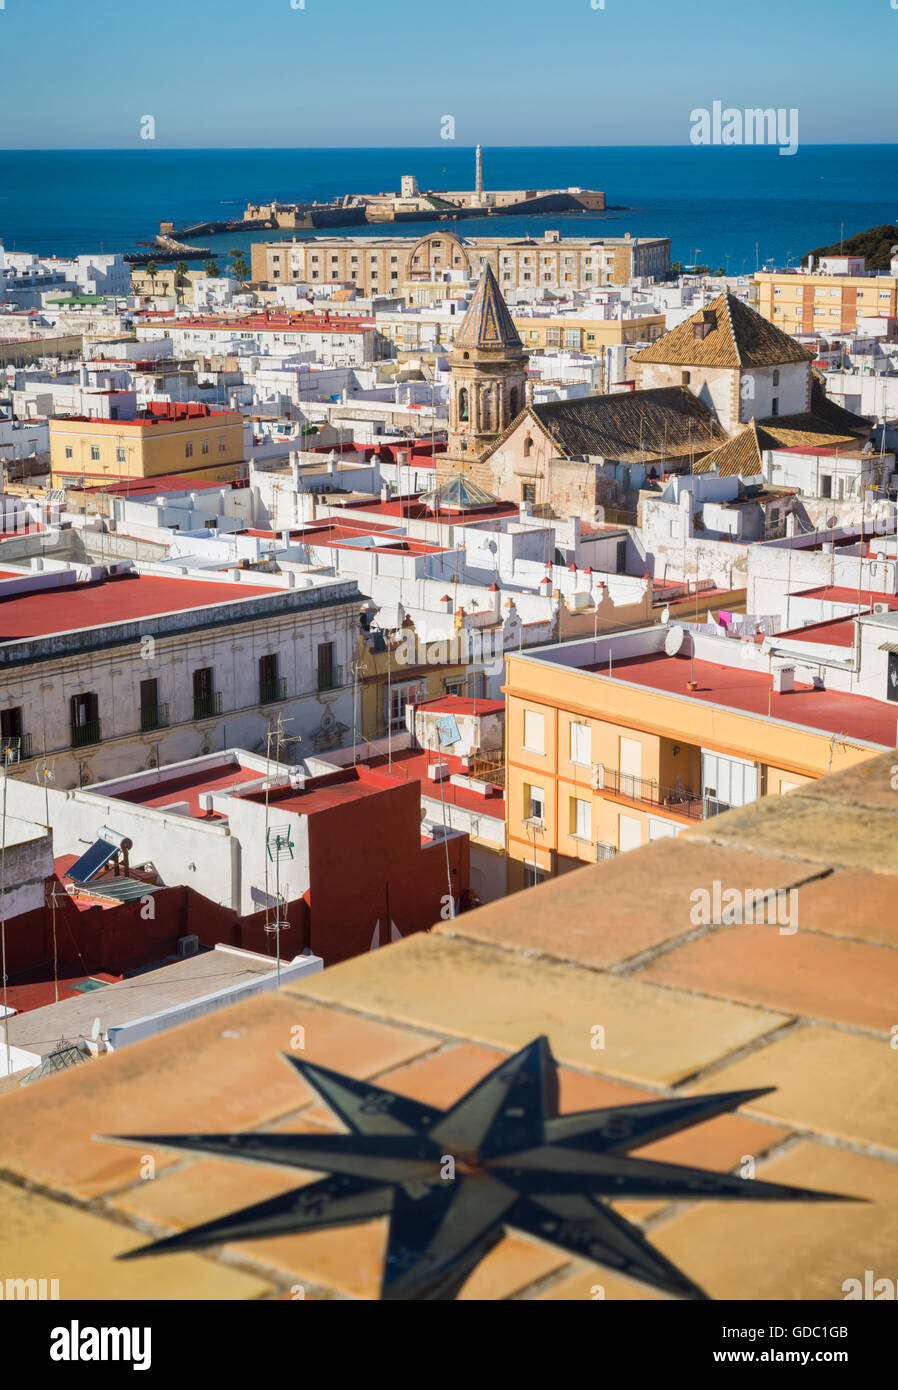 Cadiz, Costa de la Luz, Cadiz Province, Andalusia, southern Spain. View across old city rooftops - Stock Image